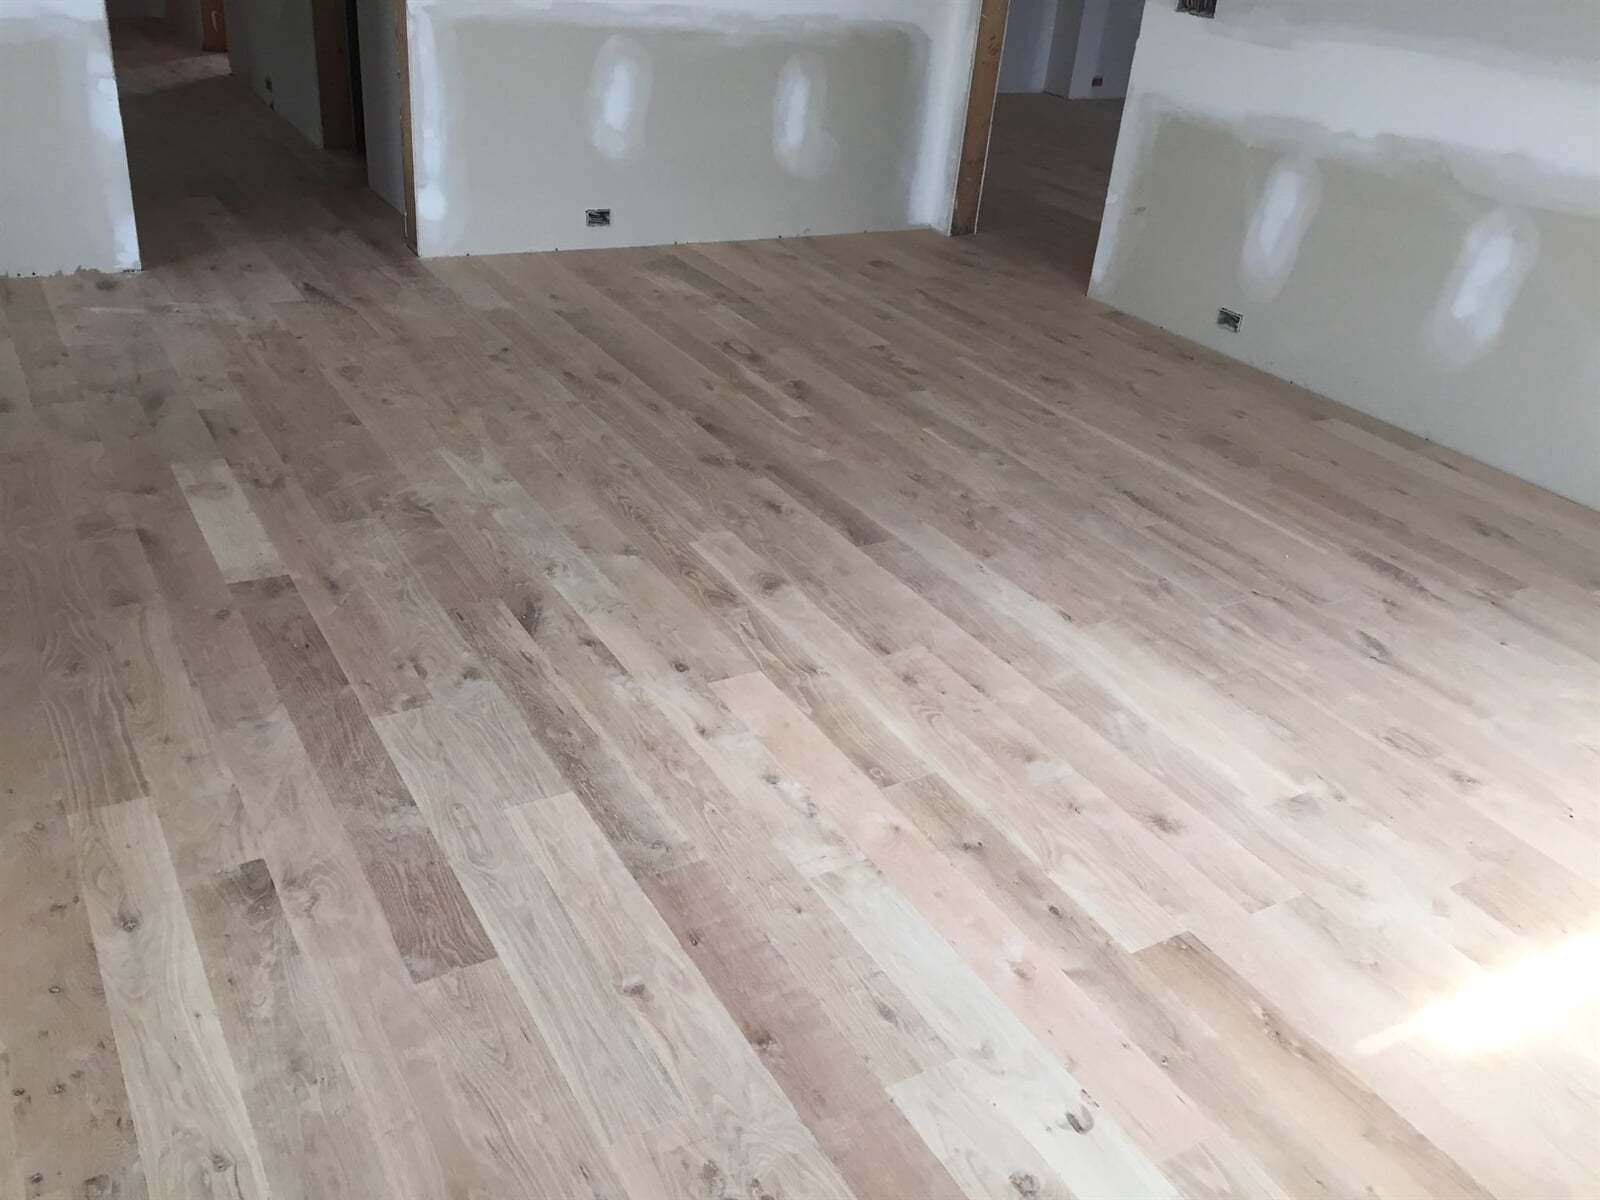 Thin hardwood plank installation in Watkinsville, GA from Carpets Unlimited